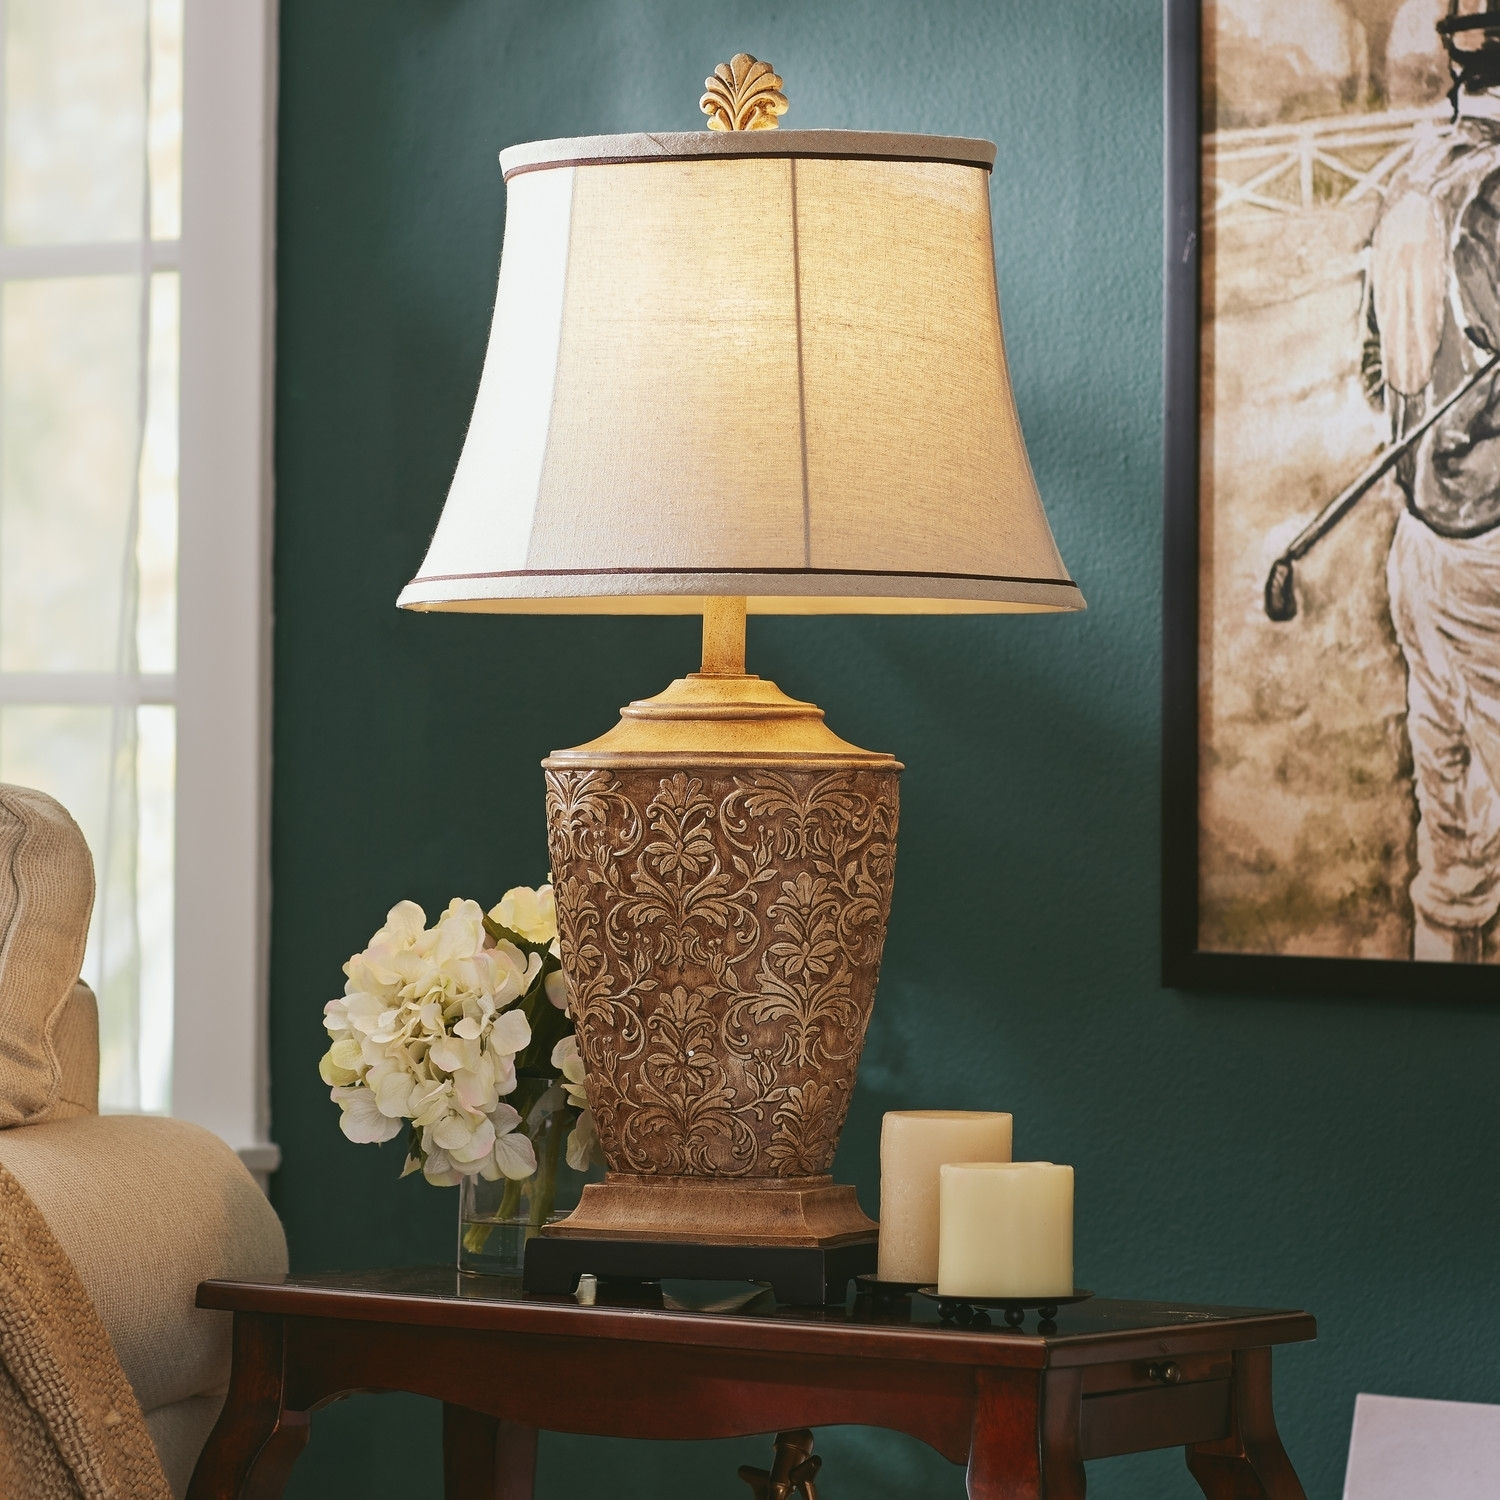 Popular Photo of Living Room Table Top Lamps